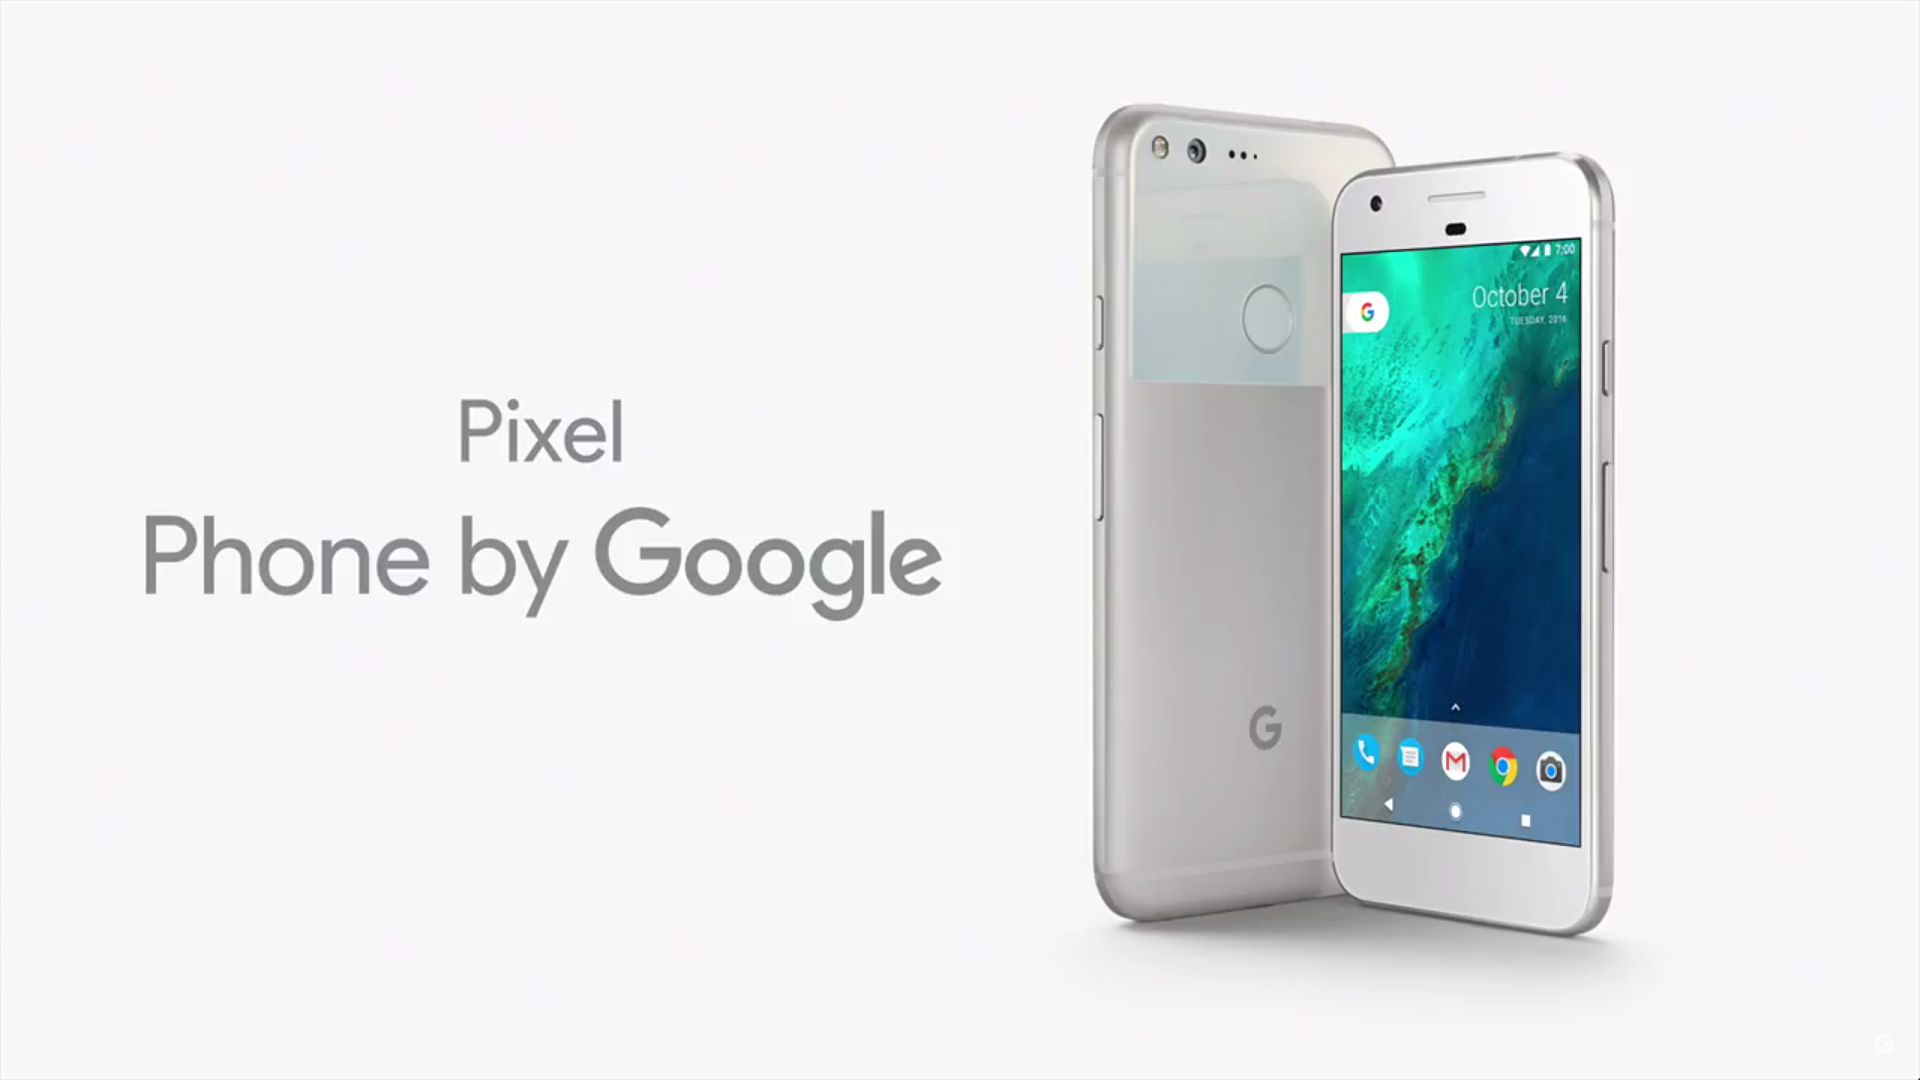 Move over Nexus, here comes Google Pixel